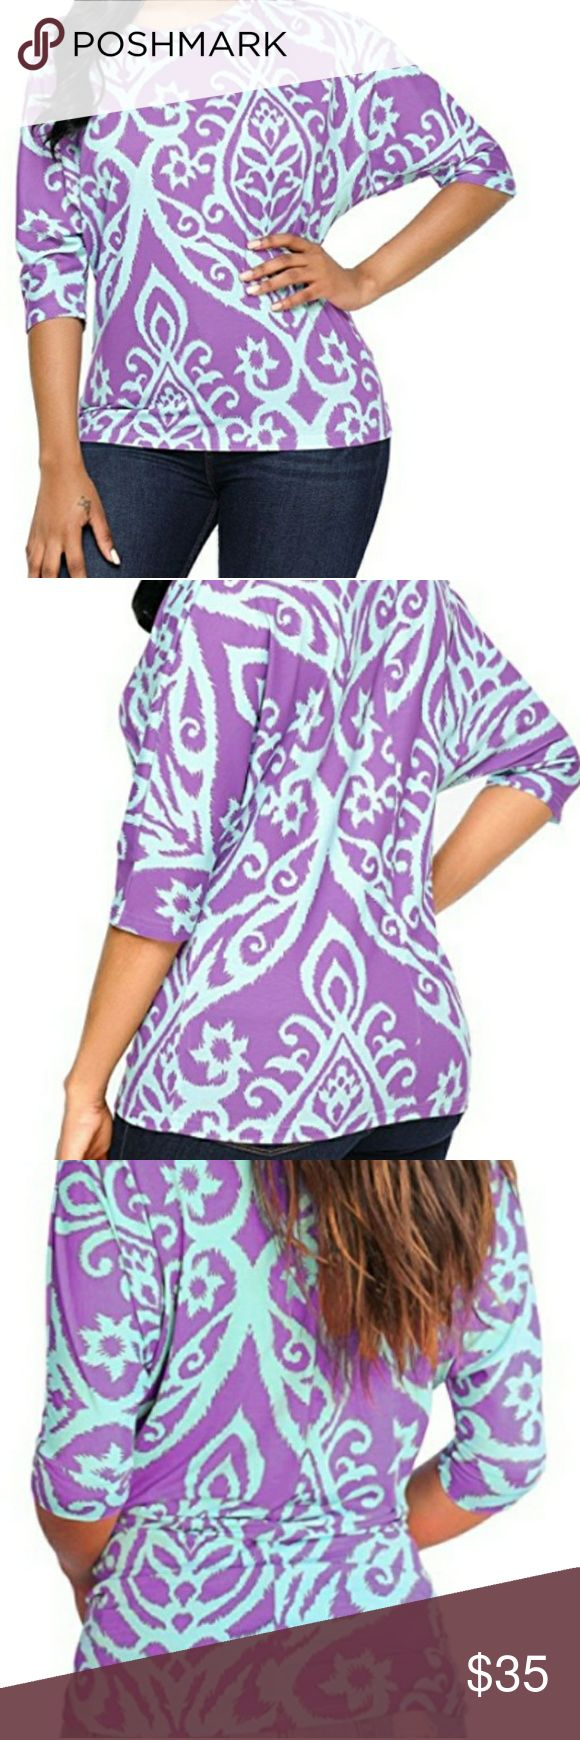 Beautiful print top Astylish Women Casual 3 4 Sleeve Paisley Print  Tops T-Shirts Purple  Material: polyester+spandex  Imported  Features:Round Neck,Batwing sleeve,3/4 Sleeve,Tendril Printed,Casual T-shirts,Regular Fit  This lightweight,round neck top is perfect for those carefree summer & Autumn!  Pair This top With Distressed Jeans and Booties  Suitable for leisure,travel,daily life Size XL (16-18) astylish Tops Blouses